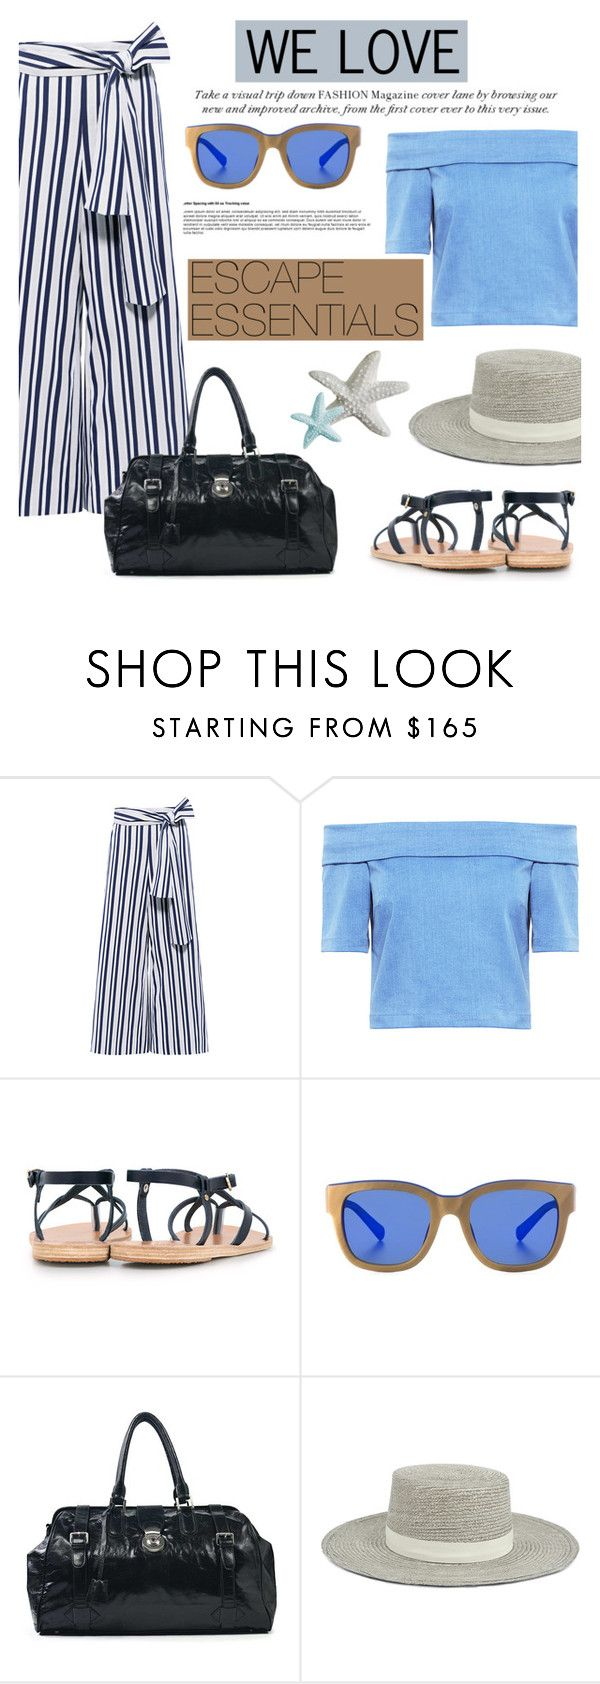 """We love: Escape Essentials"" by ifchic ❤ liked on Polyvore featuring Tanya Taylor, 3x1, Ancient Greek Sandals, Etnia Barcelona and Janessa Leone"